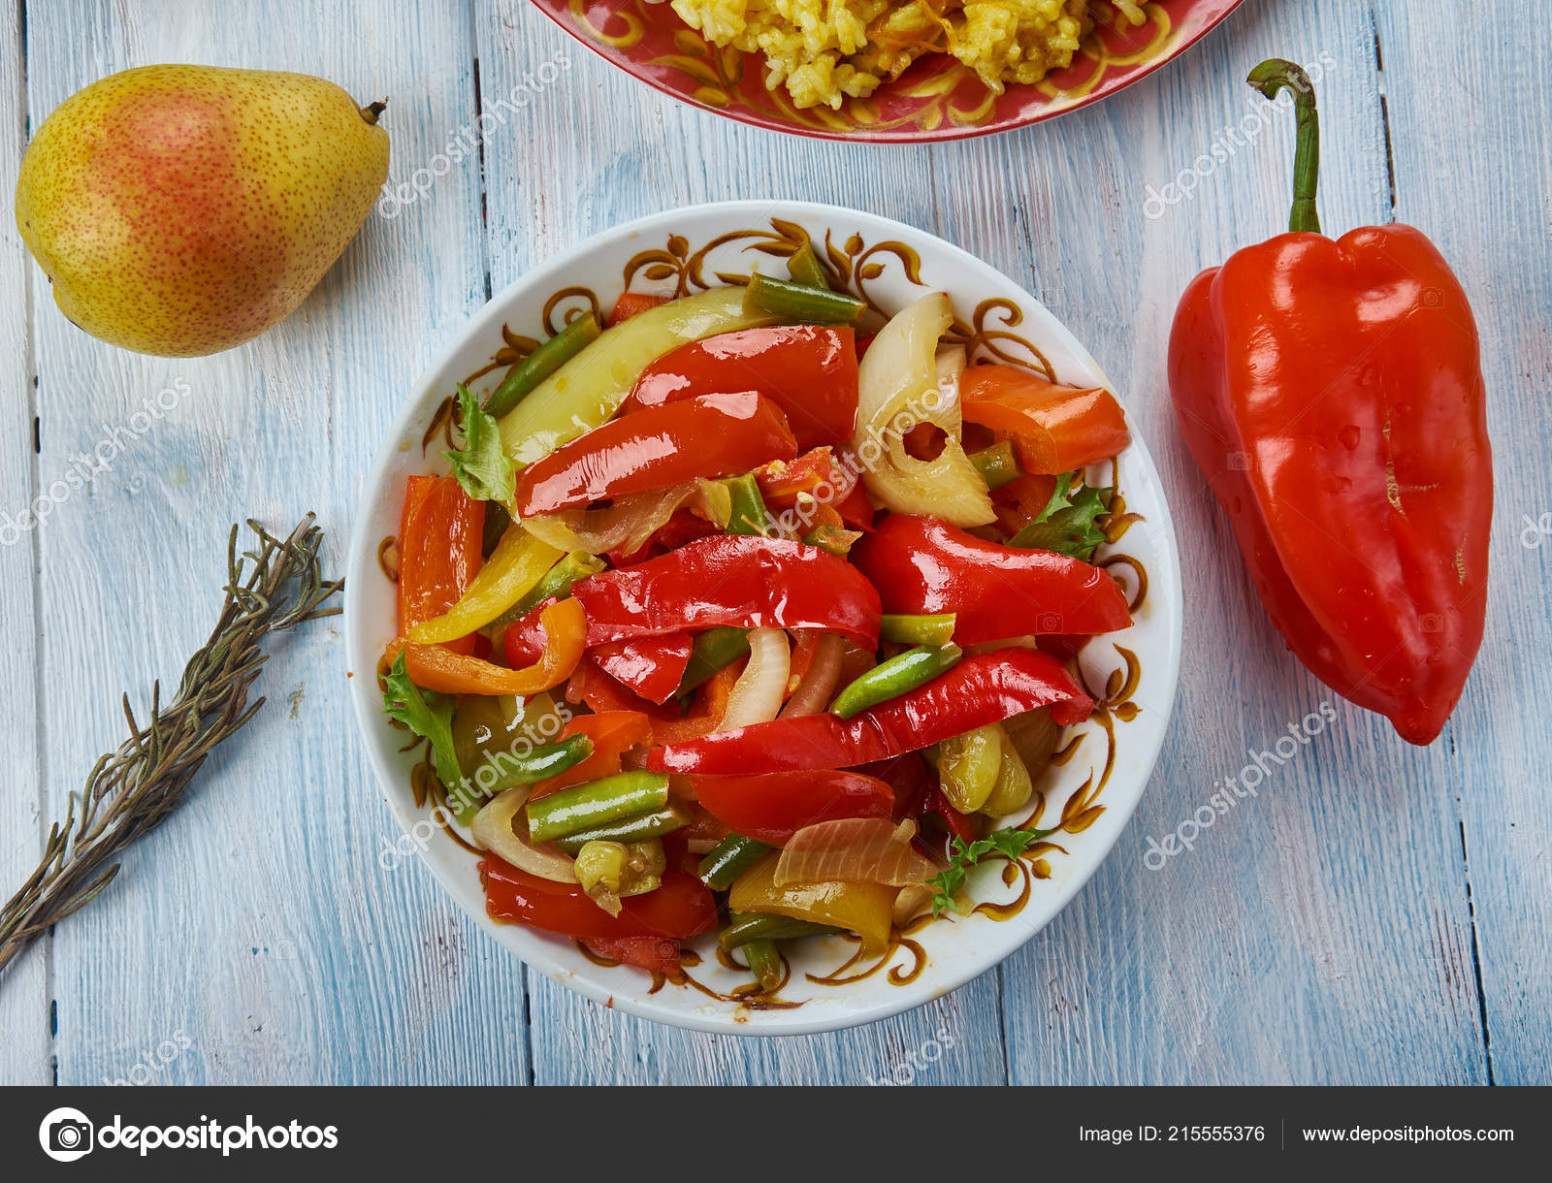 Suoman Gush Siz Delicious Dish Vegetables Peppers Uyghur ..